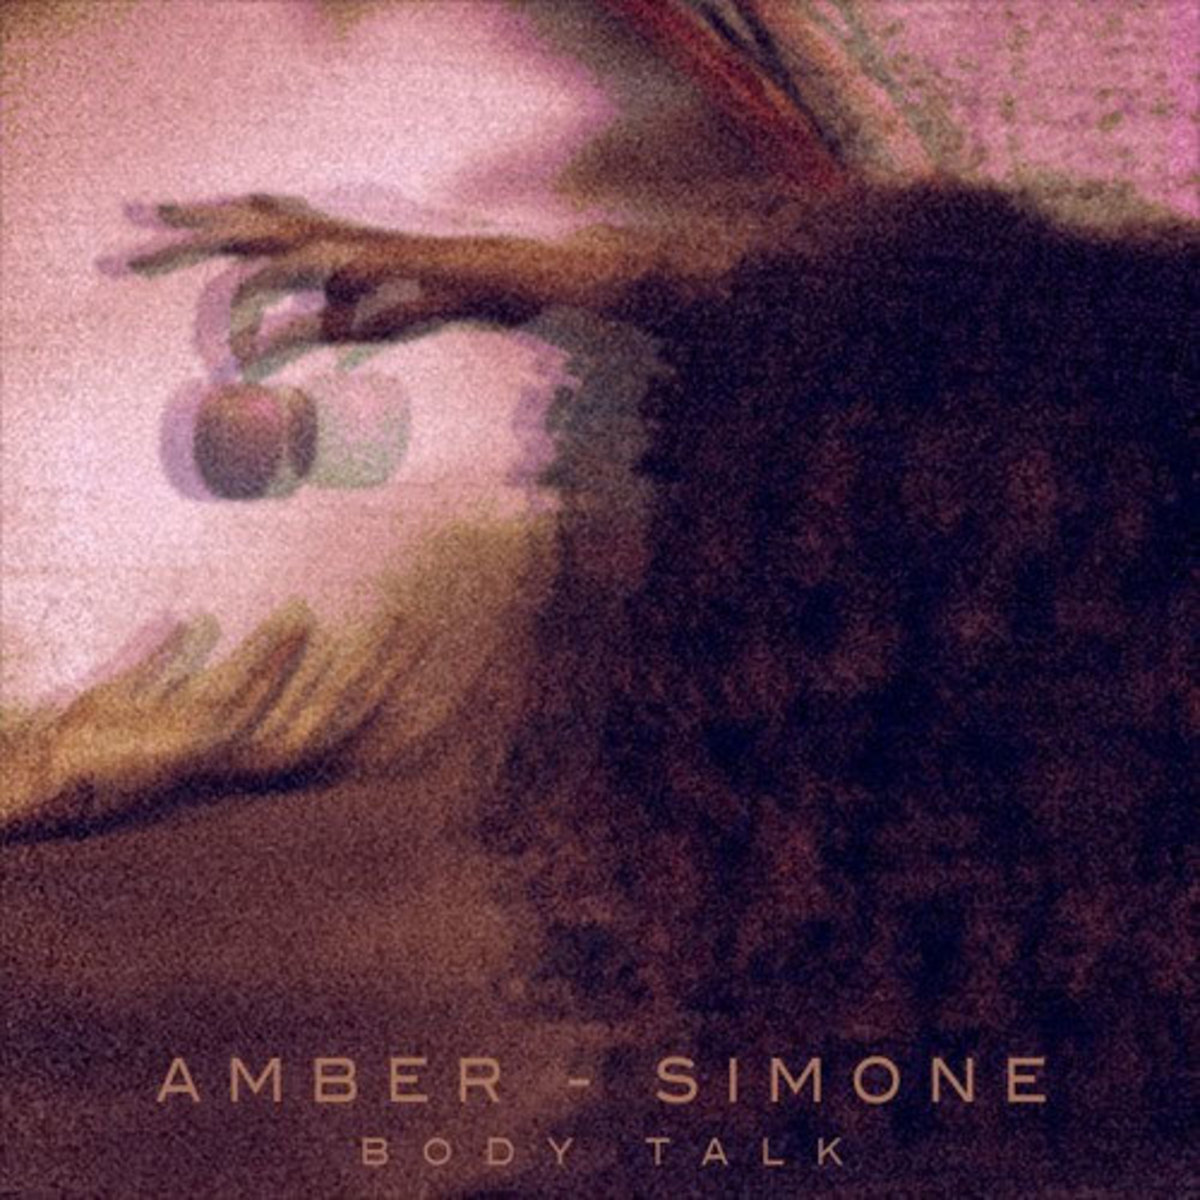 amber-simone-body-talk.jpg